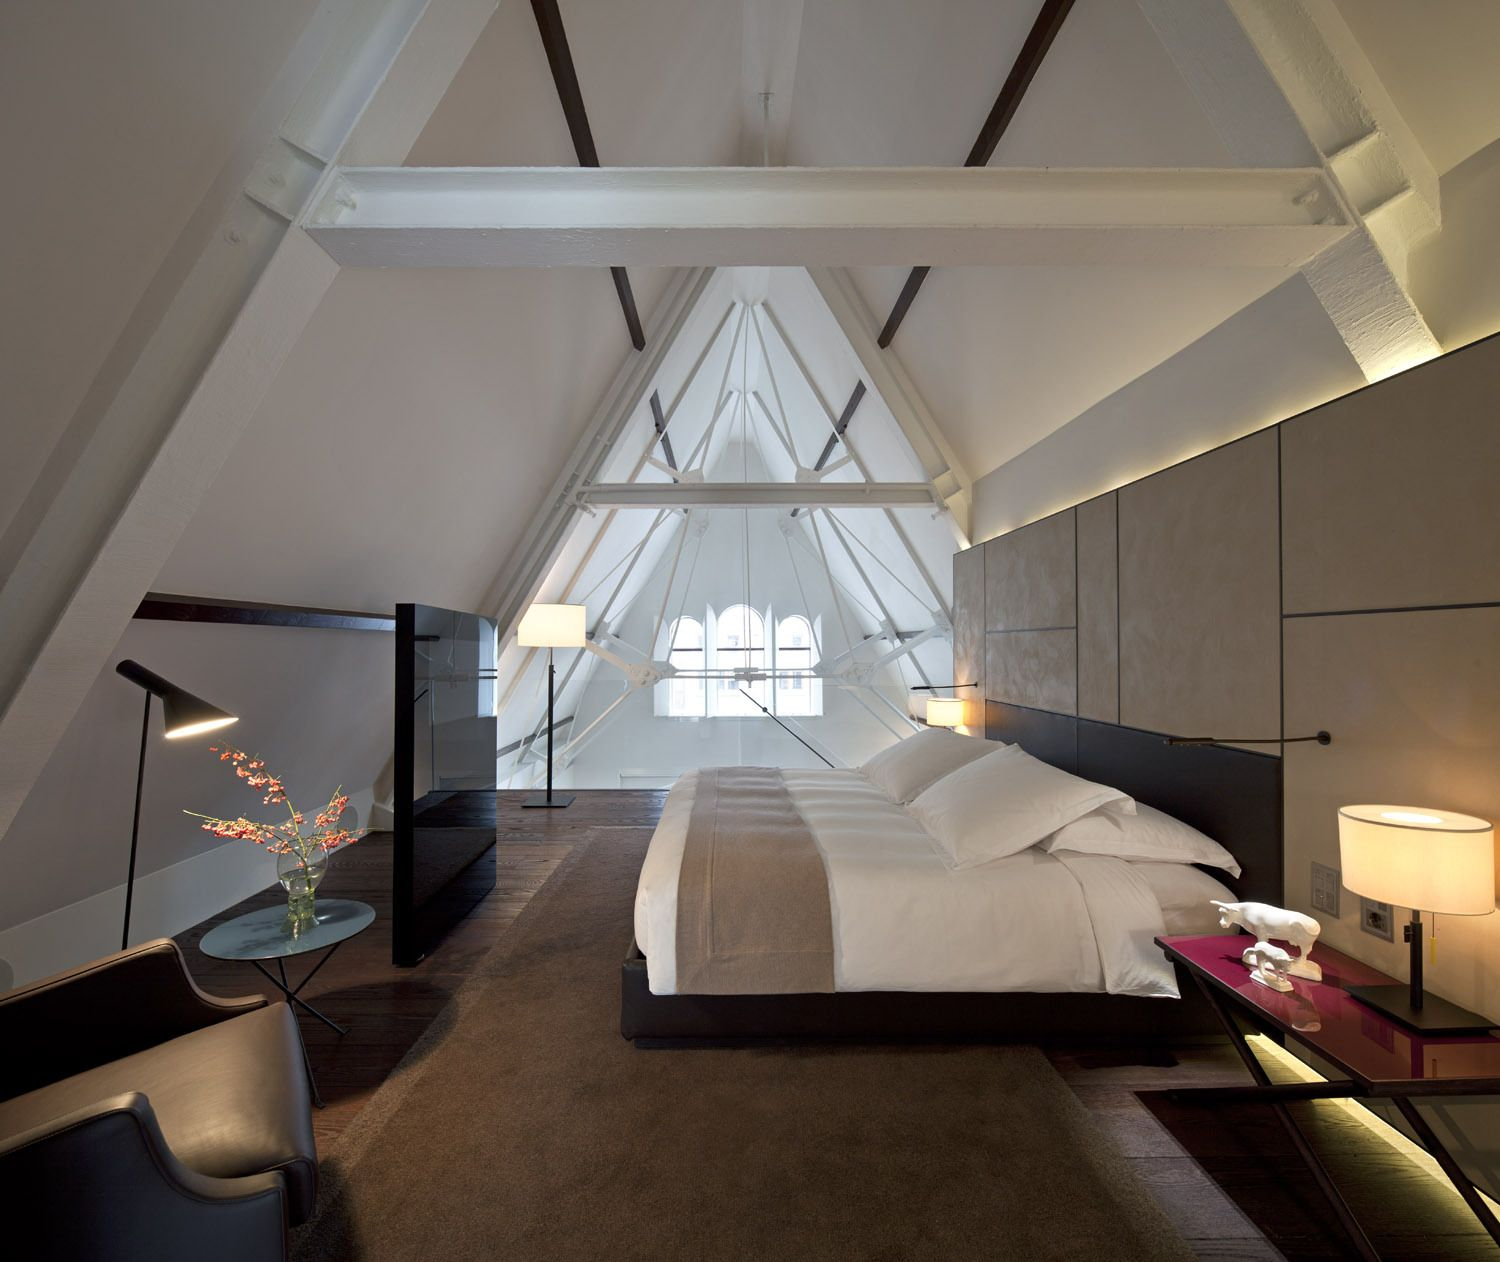 The Ultimate Hotel In Amsterdam For Art Lovers